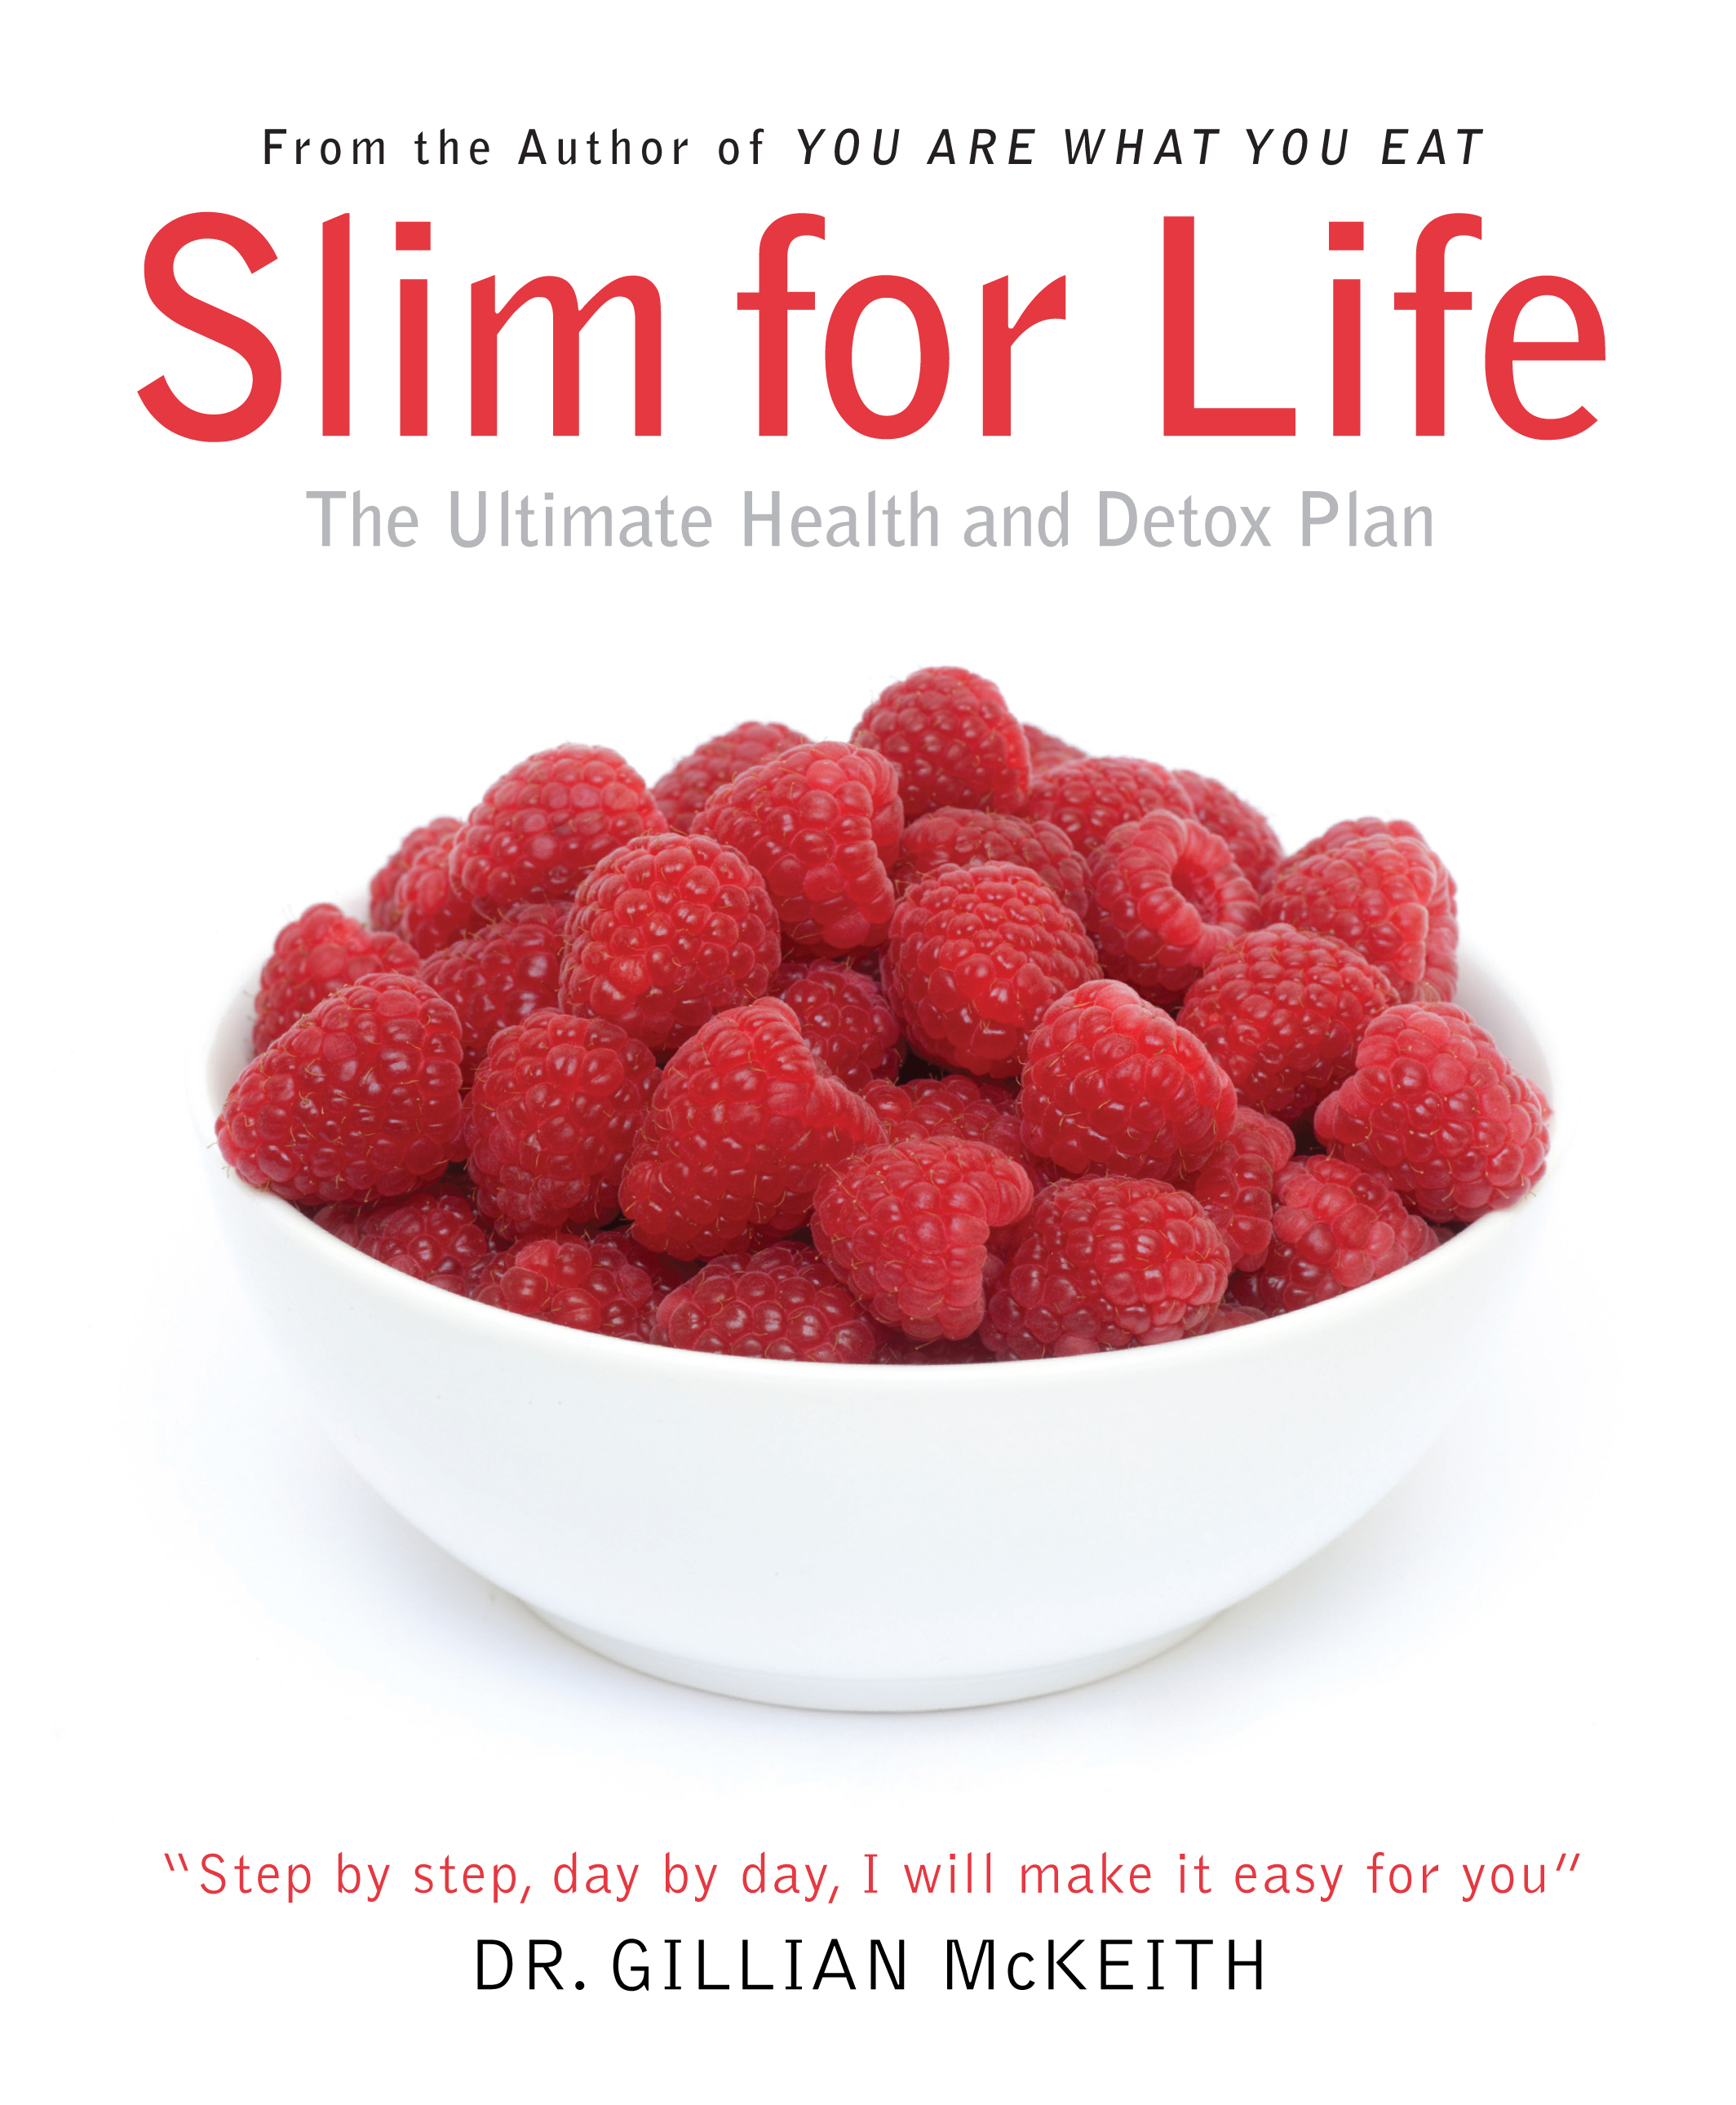 Slim for Life By: Dr. Gillian McKeith